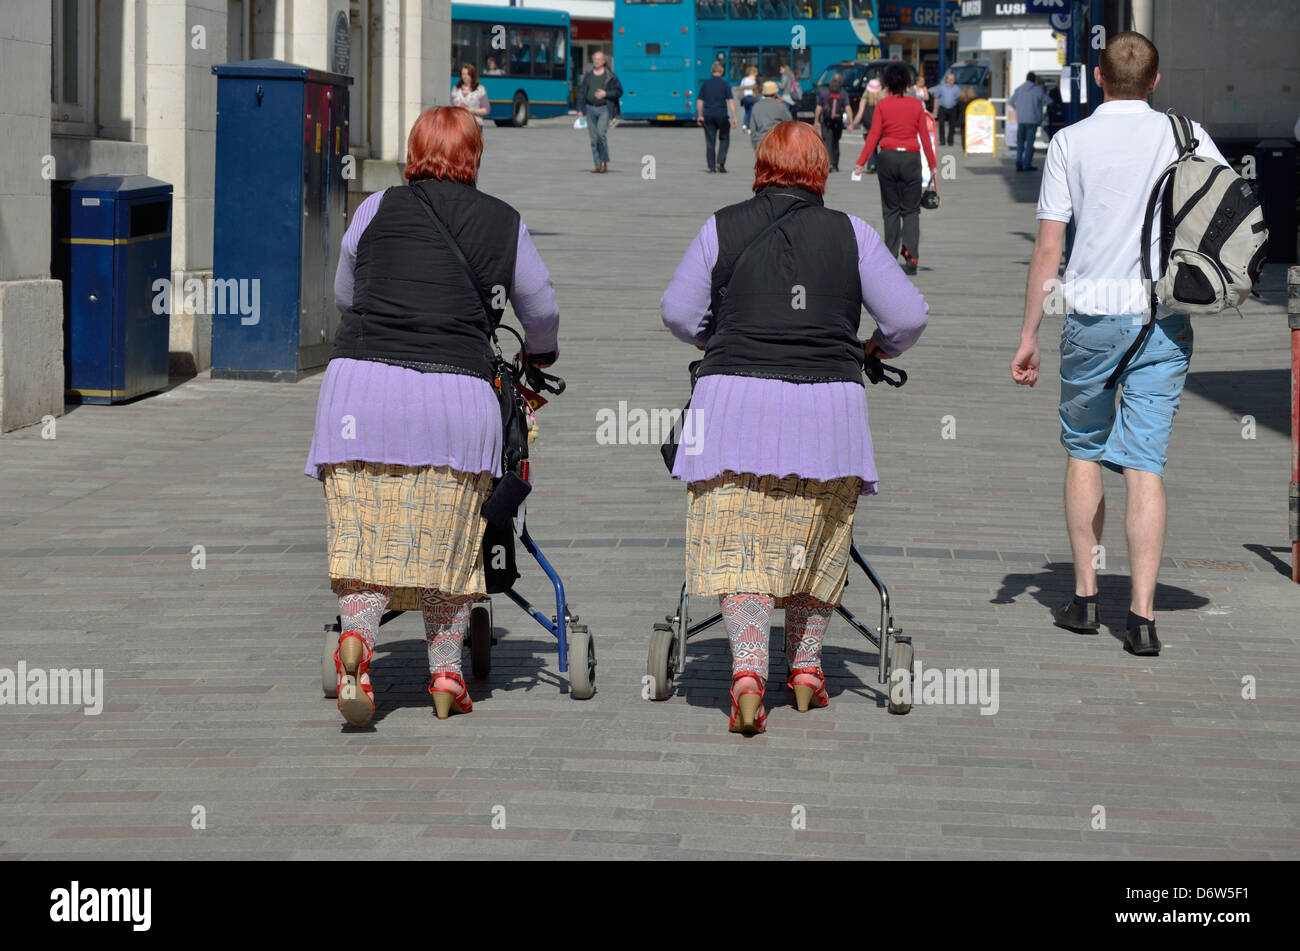 Maidstone, Kent, England, UK. Two middle-aged female identical twins (women) dressed the same - Stock Image